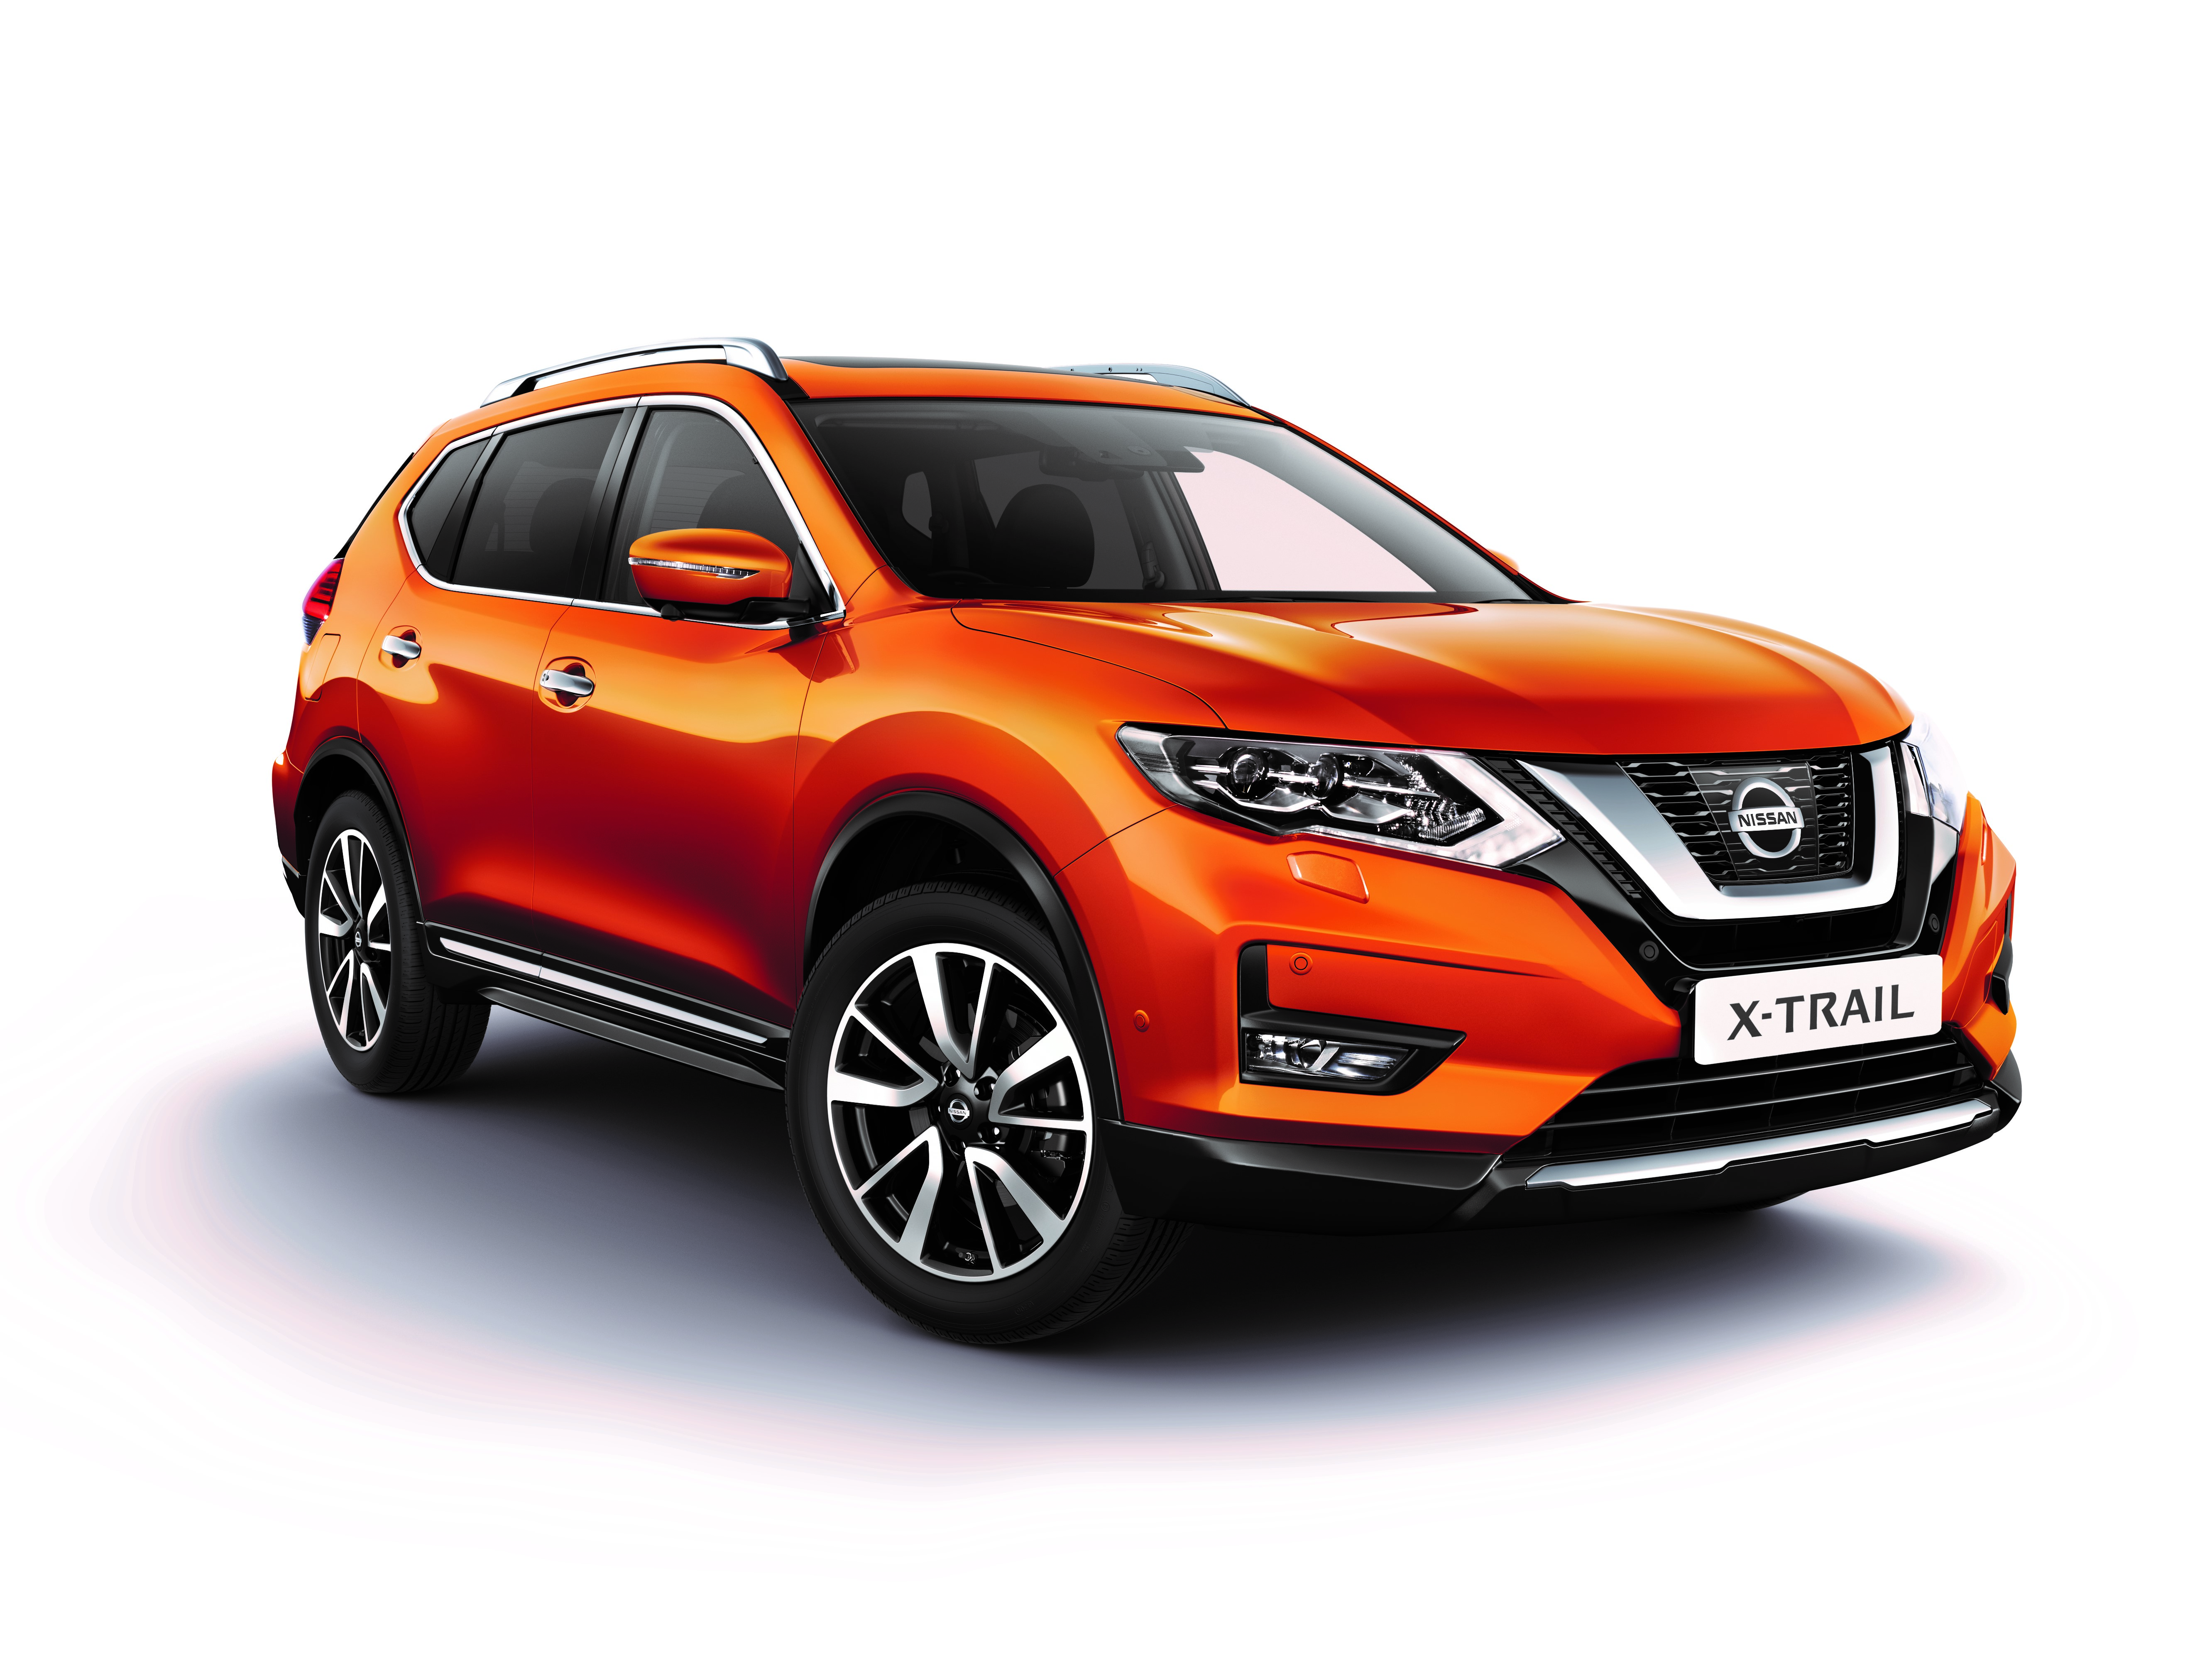 Nissan X-Trail dCi 150 Tekna 4WD MT 5 seats Tan leather moonroof Advanced Drive pack